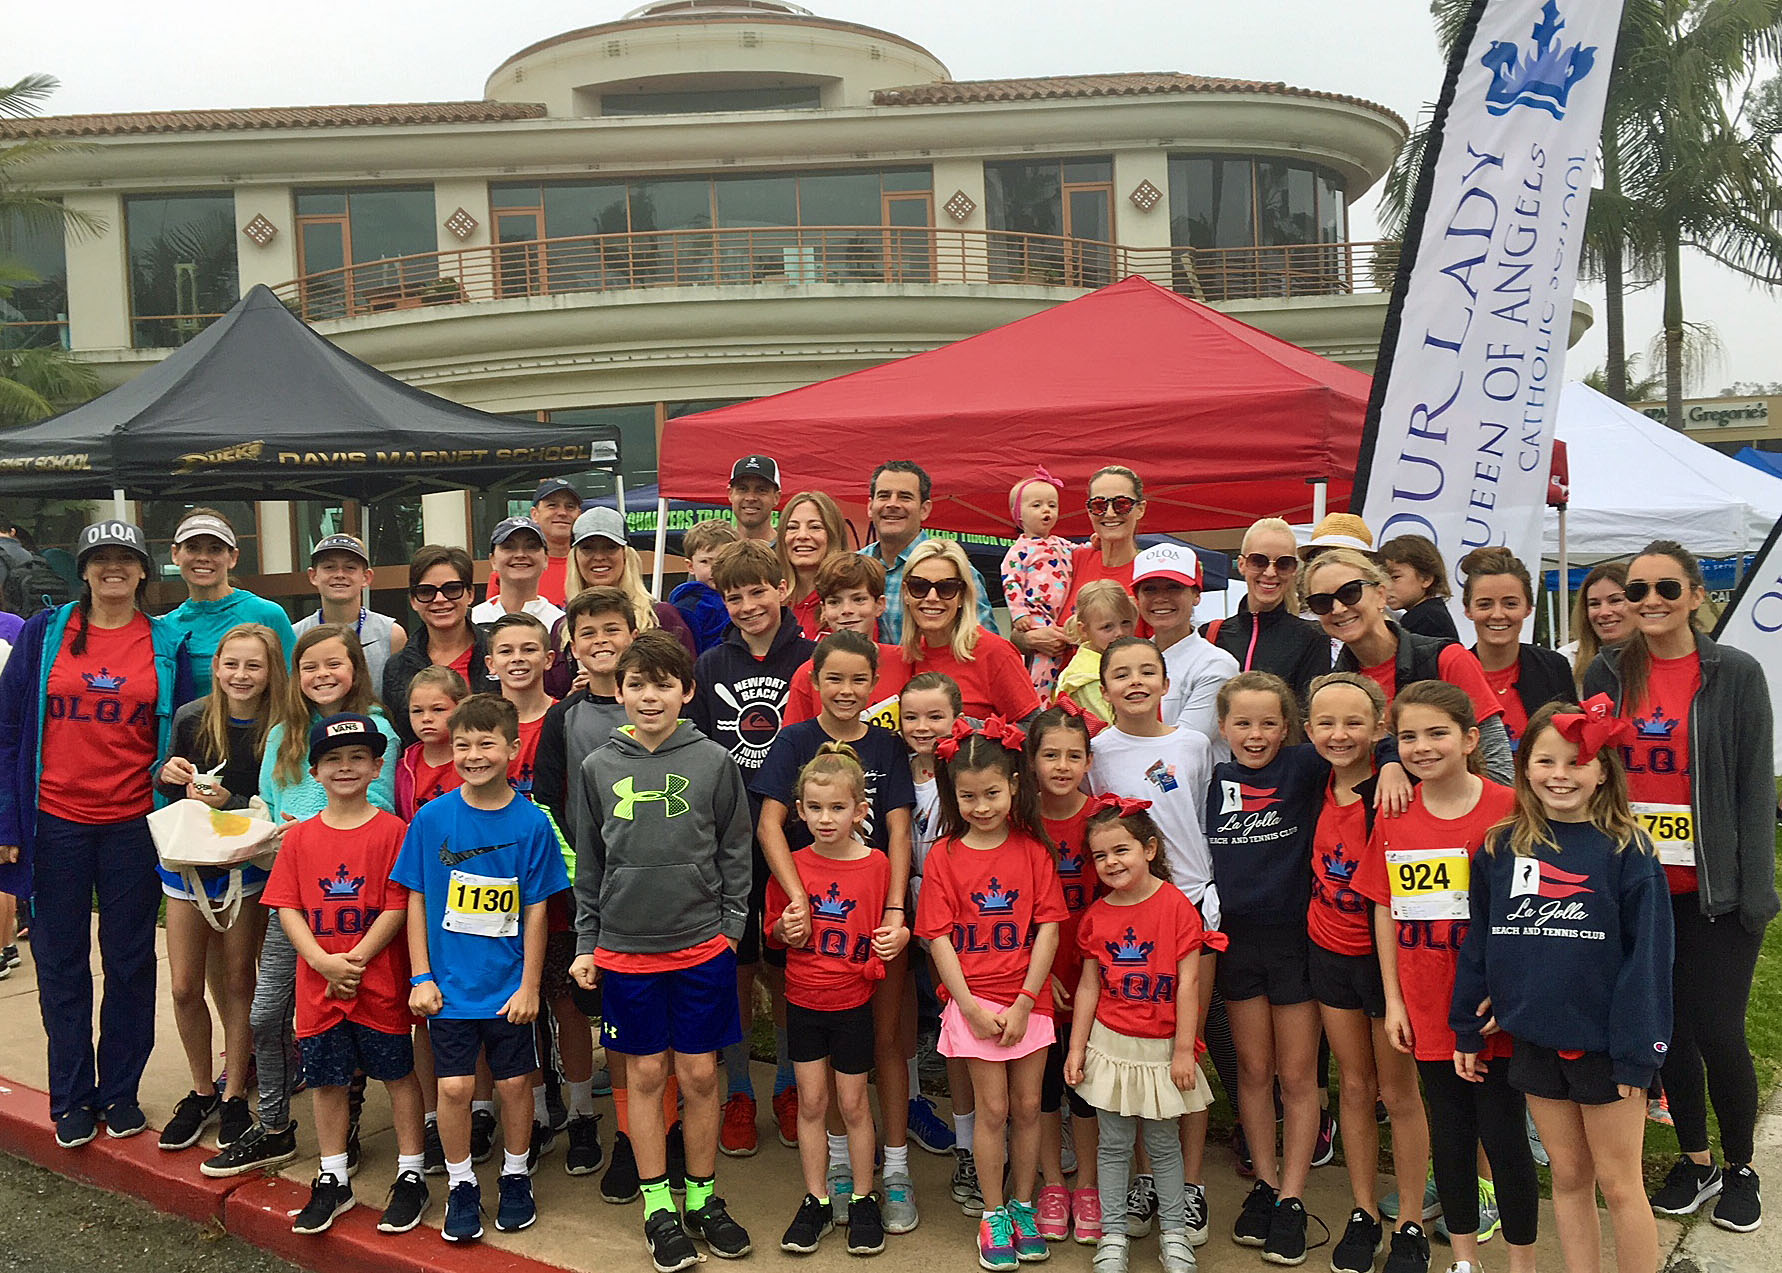 """""""Dash for Cash"""" fundraiser - Visit Stu News Newport to learn how all schools may share in Spirit Run's fun and funds."""